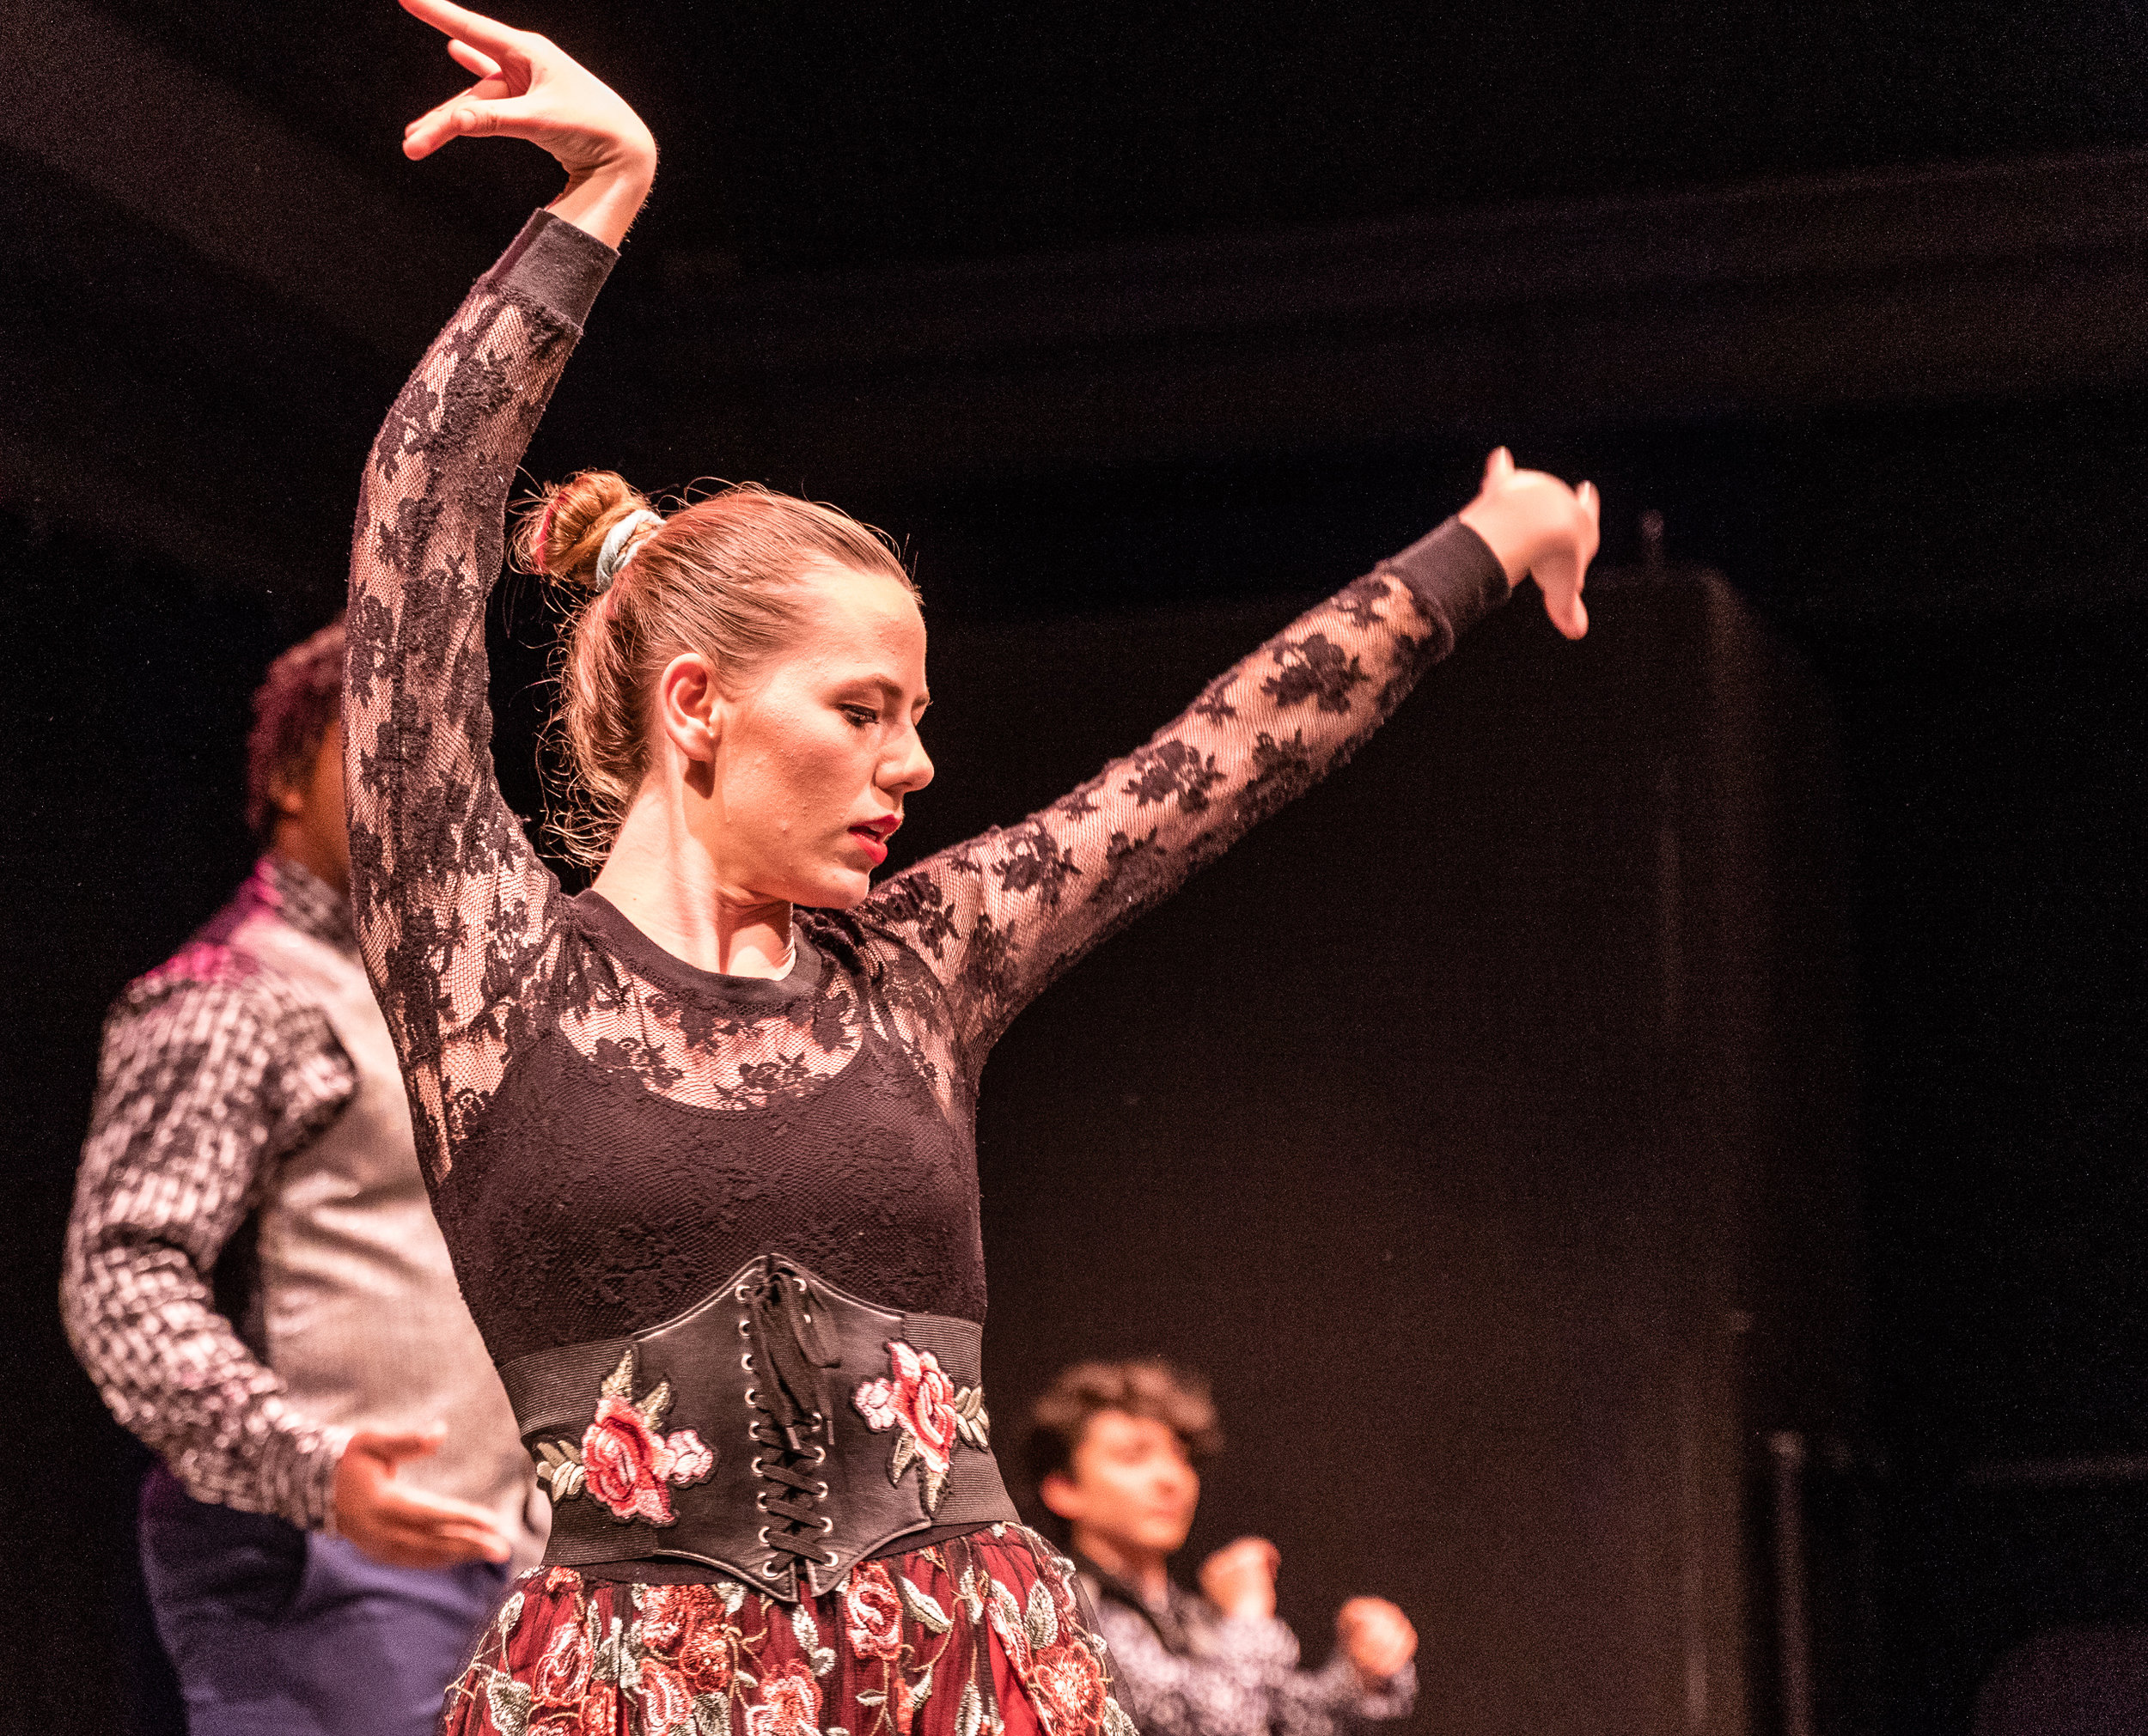 Charlotte Robinson (Lead Singer) dances through an early scene in the tech rehearsal for Flamenco Macbeth on the SMC Studio Stage on Tuesday, April 23, 2019. Flamenco Macbeth is an adaptation from Shakespeare by SMC Theatre Arts department chair Perviz Sawoski. Performances are in the SMC Studio Stage on April 26, 27, 28, and May 3, 4, 5. (Glenn Zucman/The Corsair)